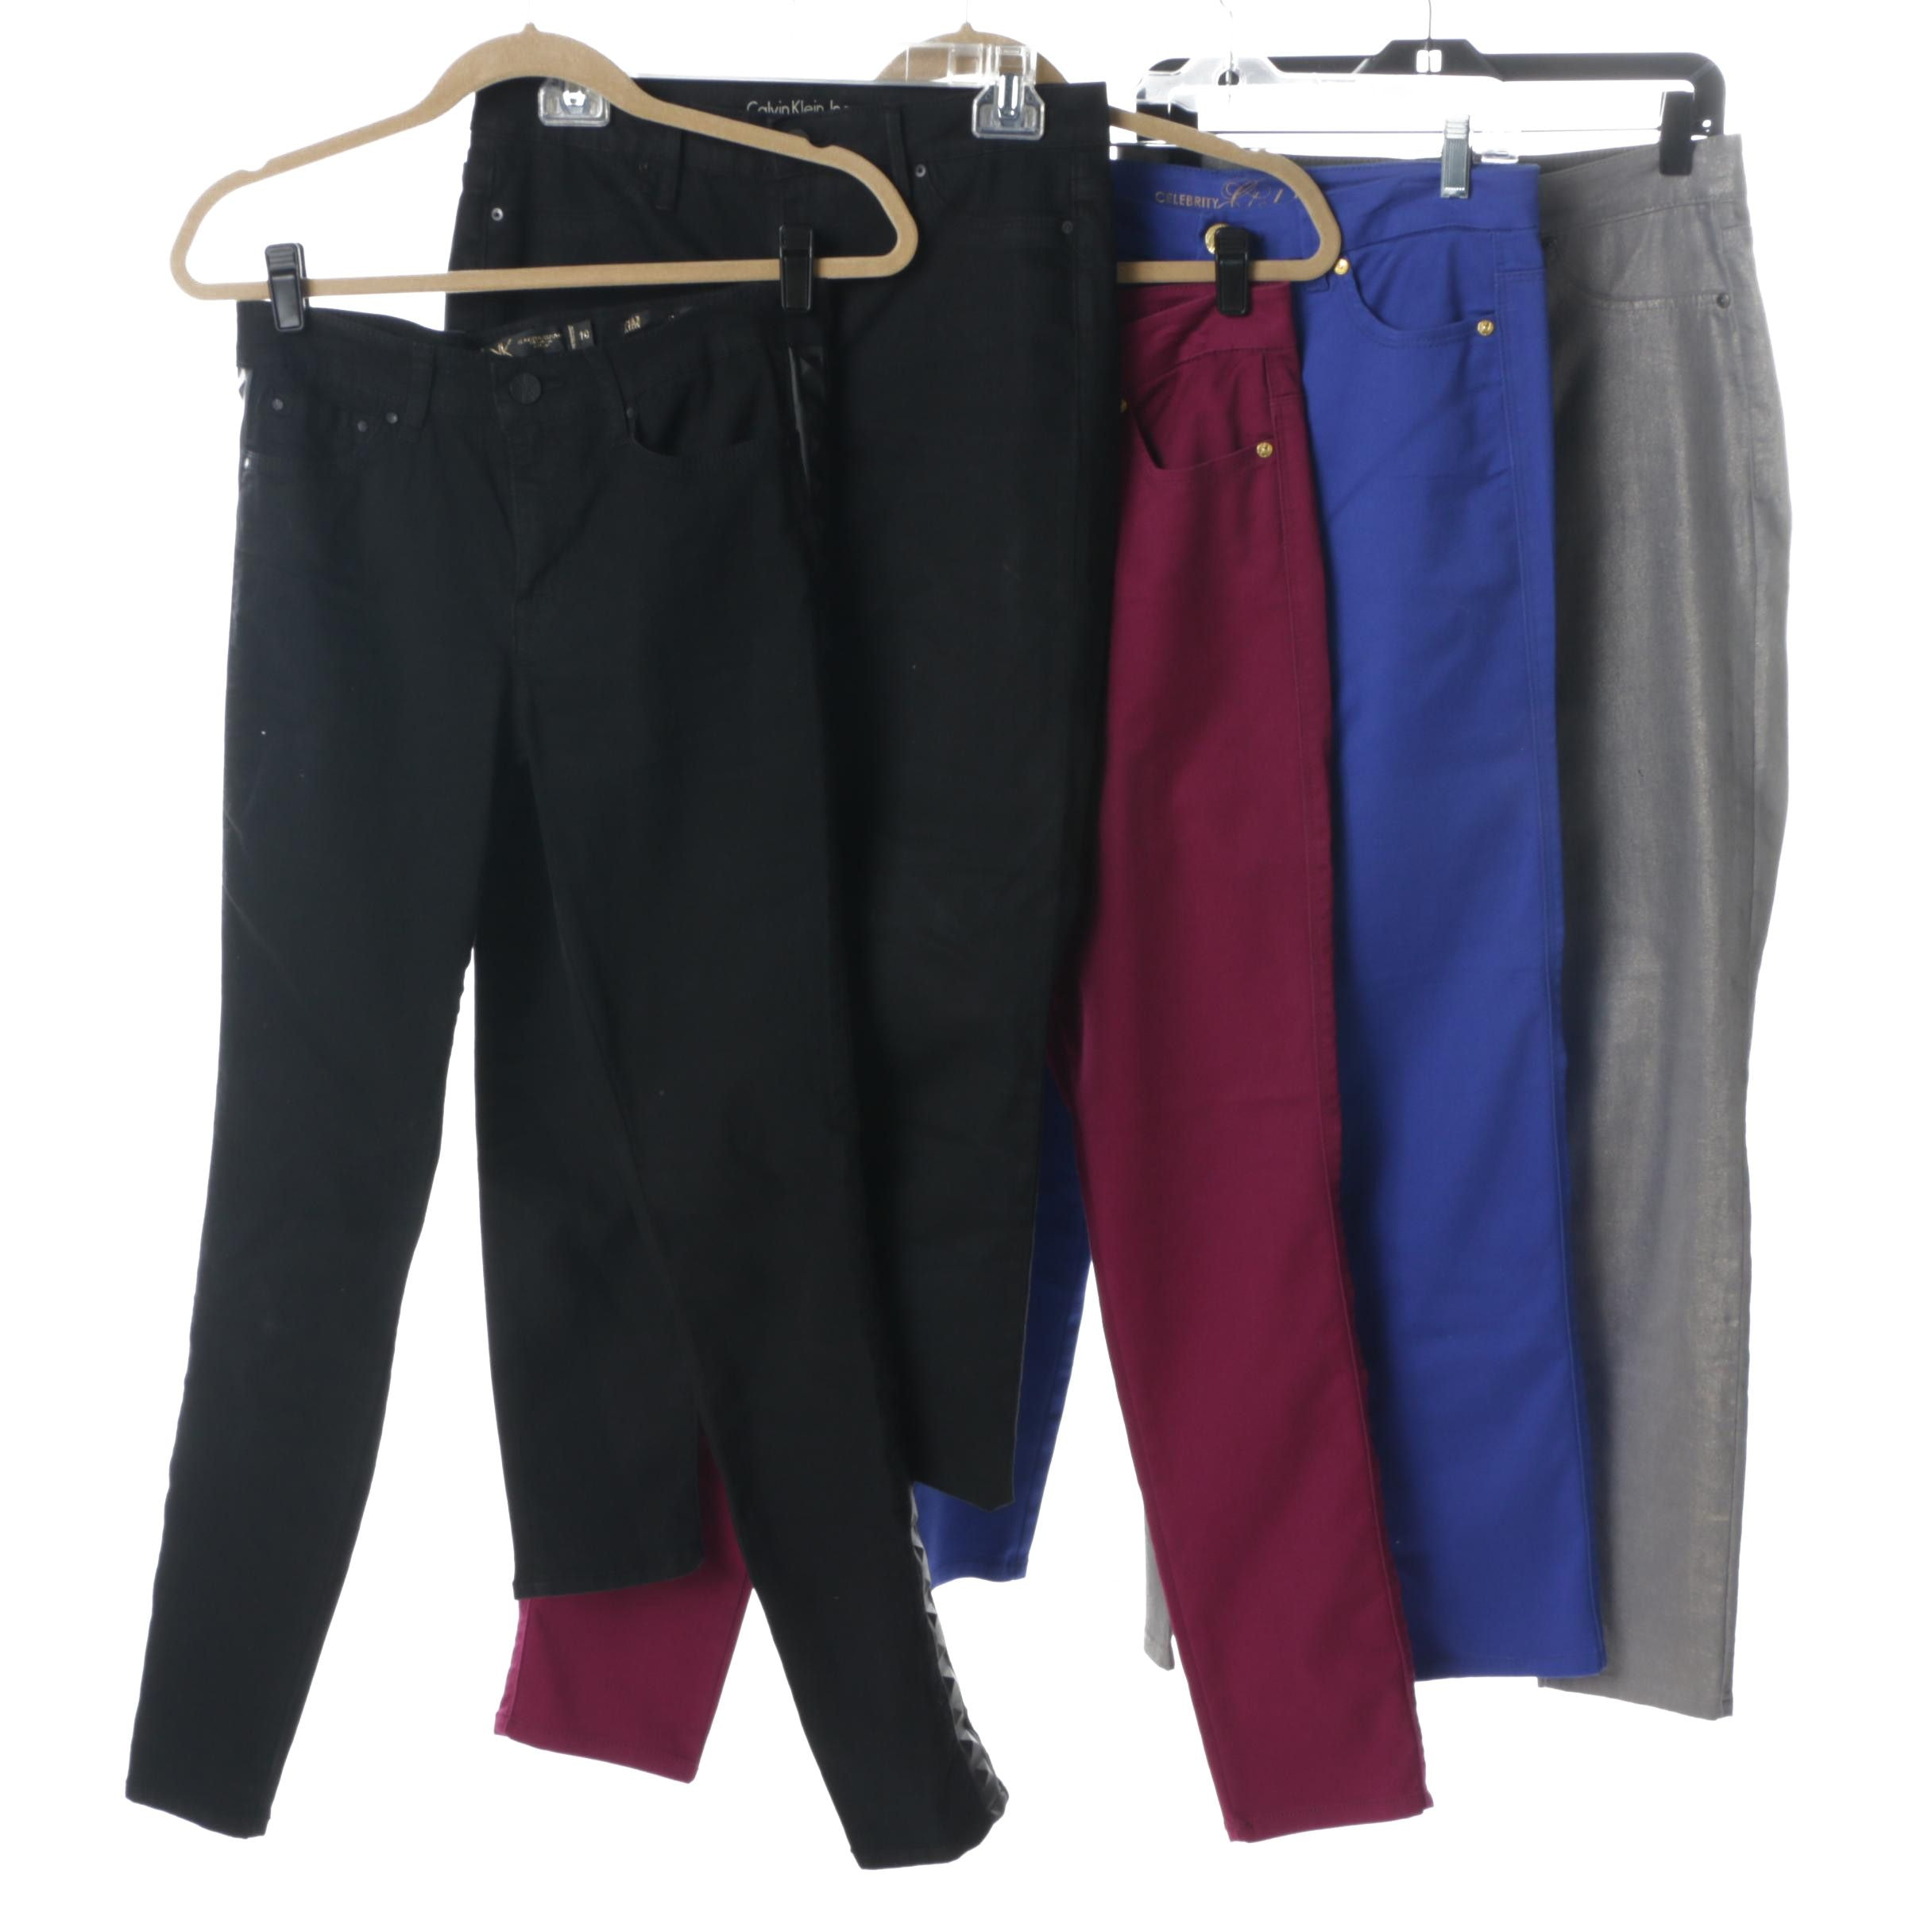 Women's Casual Pants with Calvin Klein